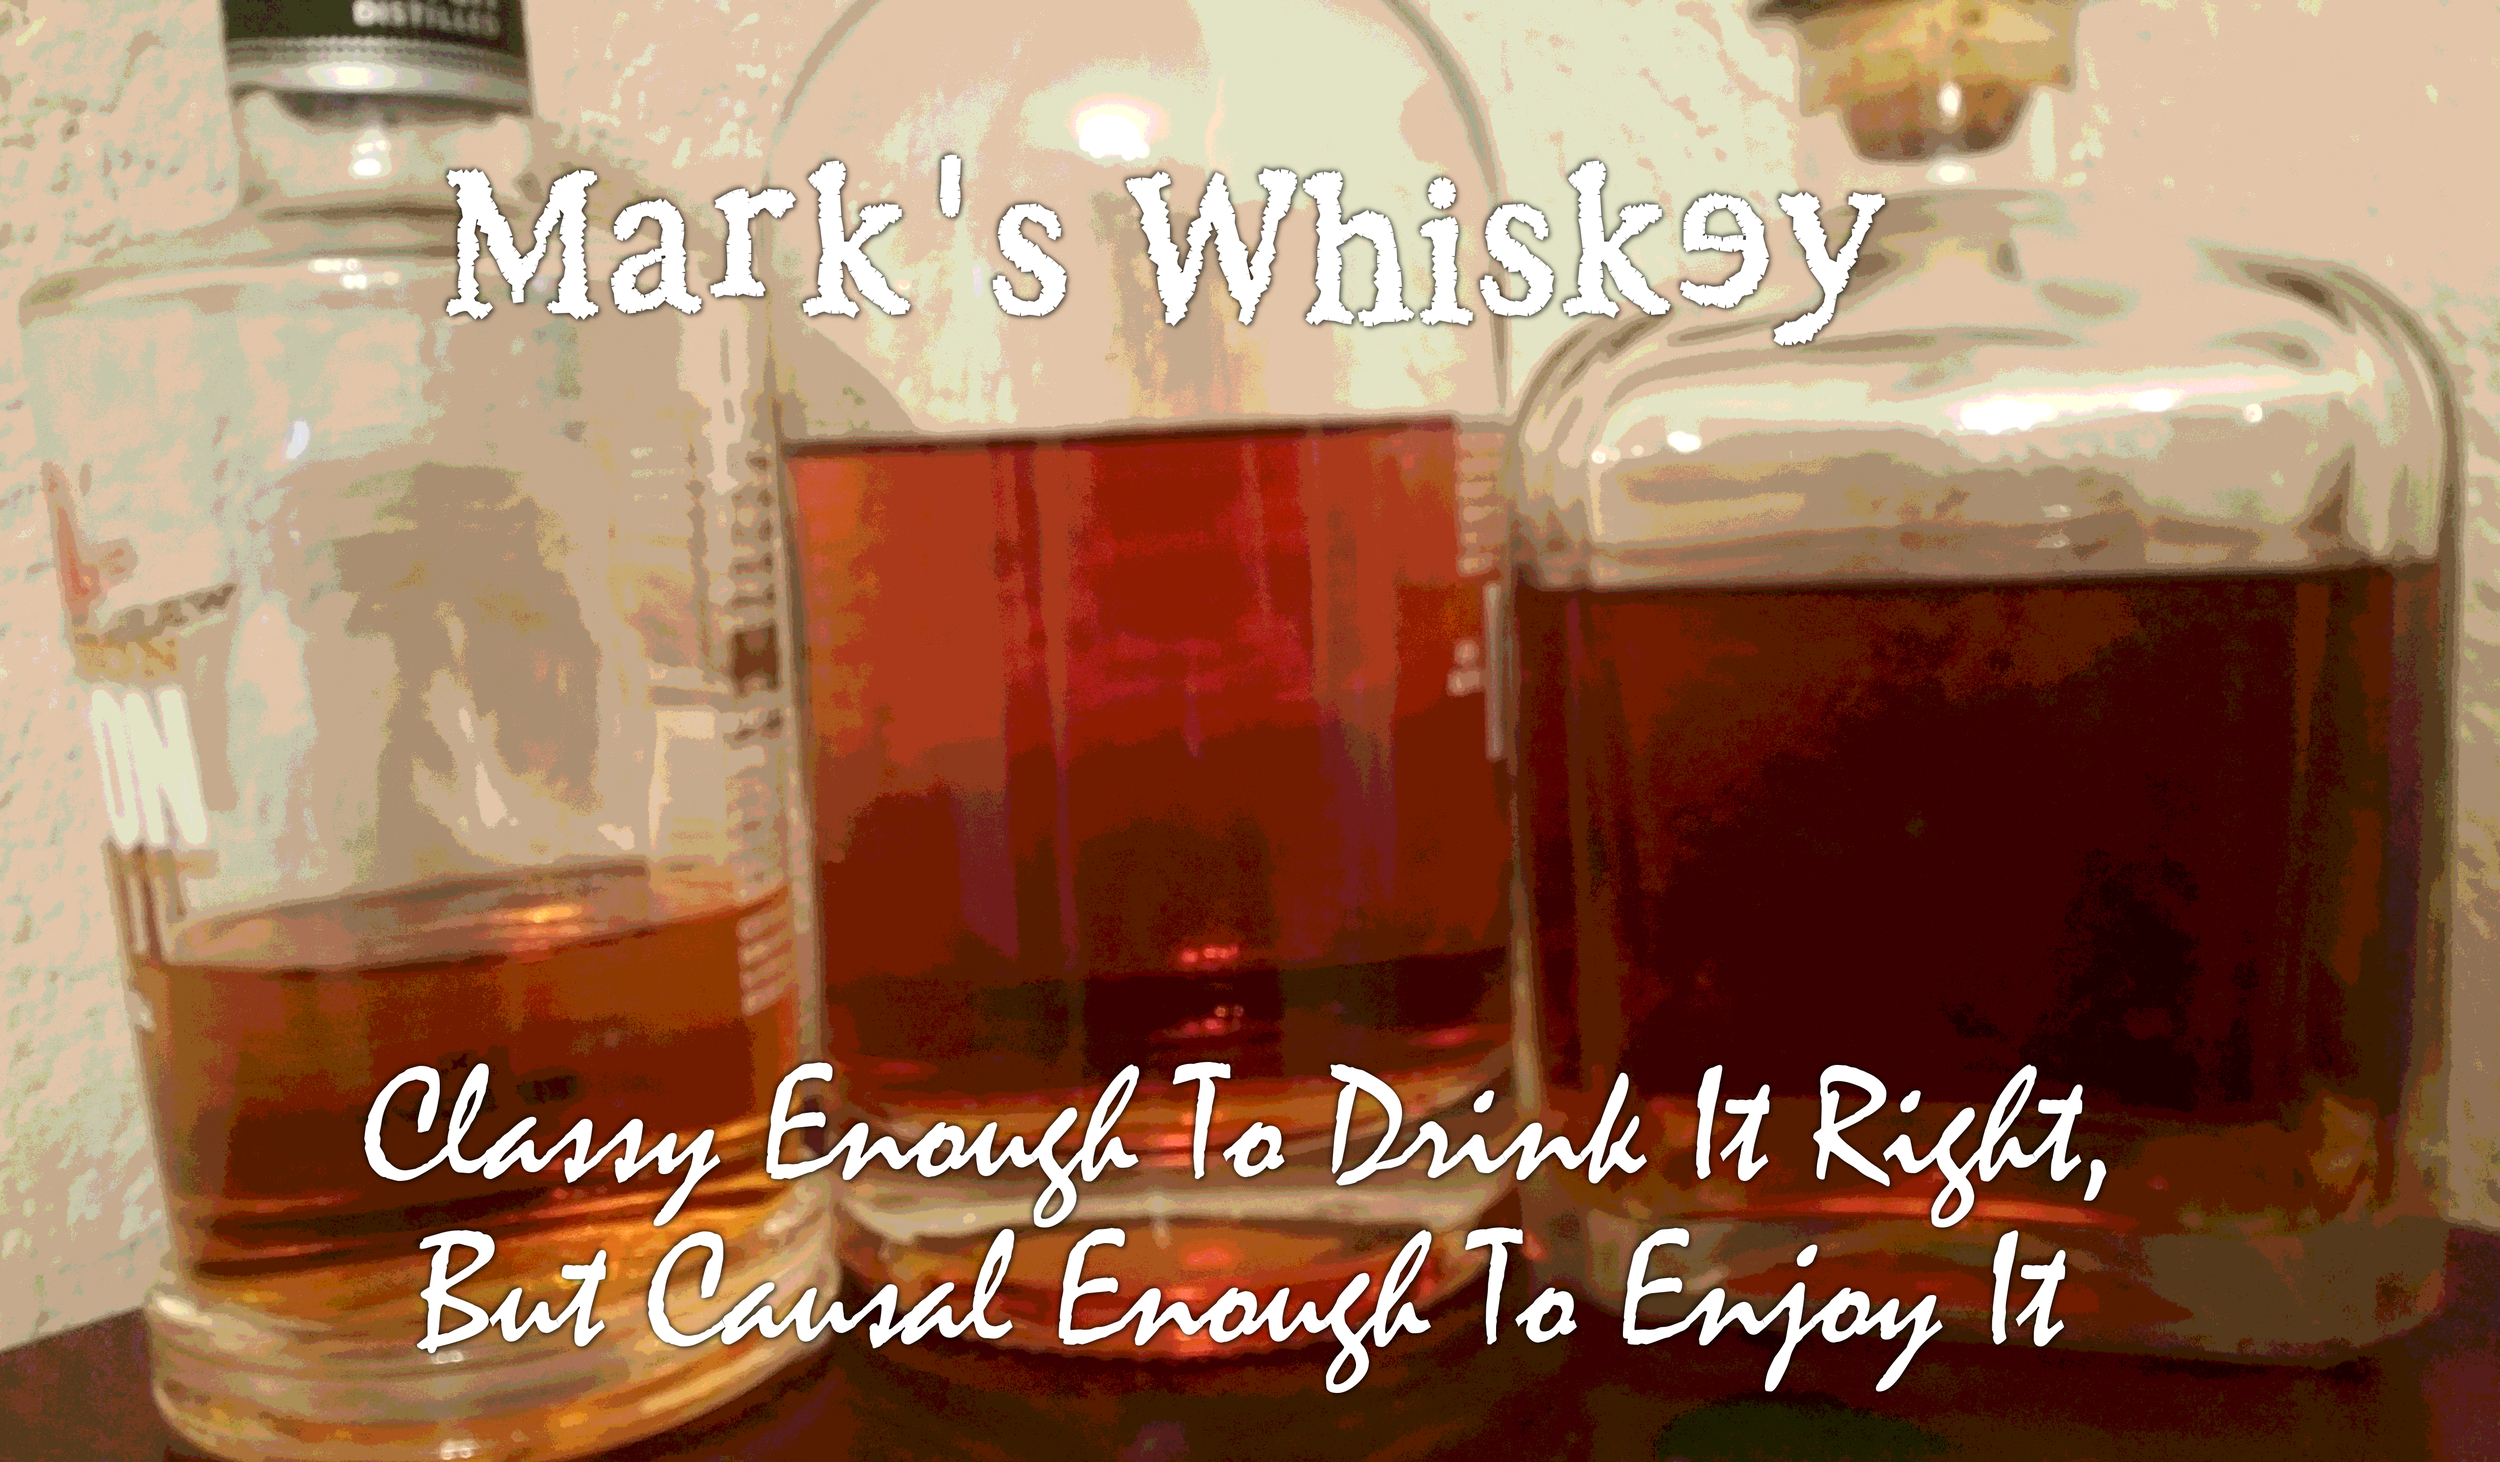 Mark's Whiskey